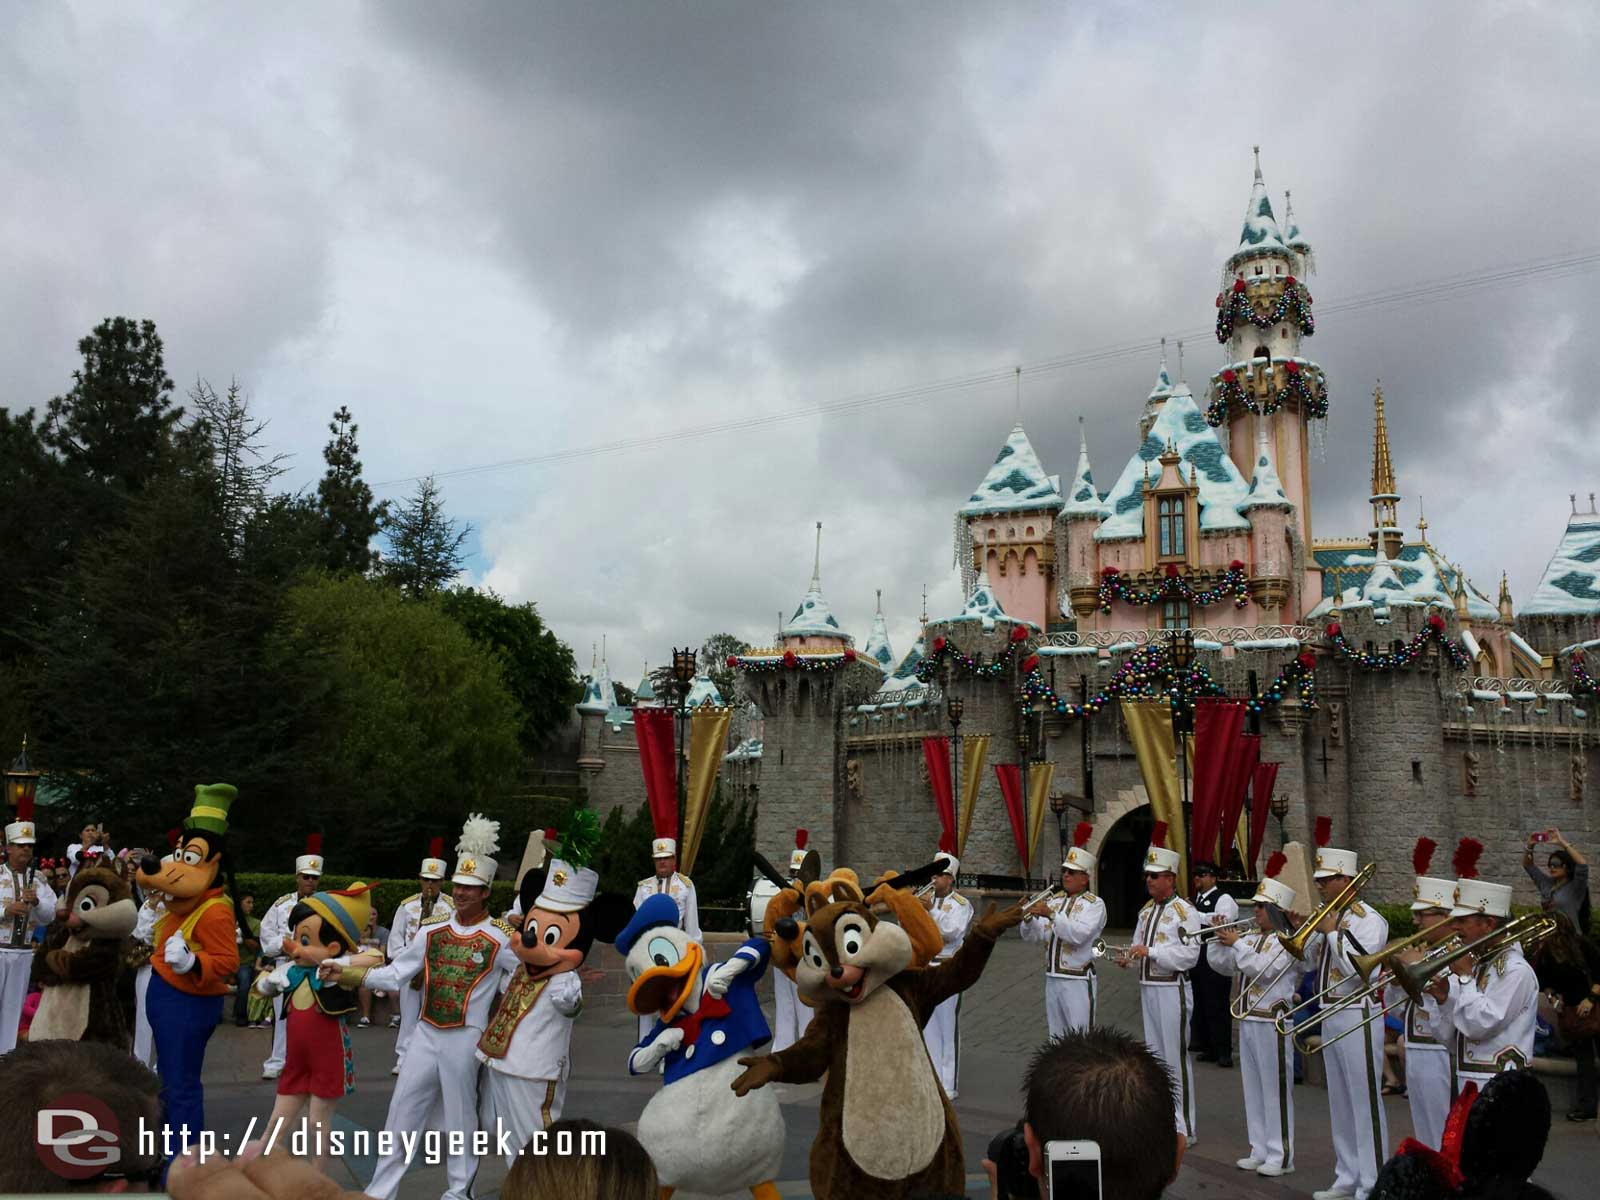 Mickey & the gang join the #Disneyland Band in front of Sleeping Beauty Castle